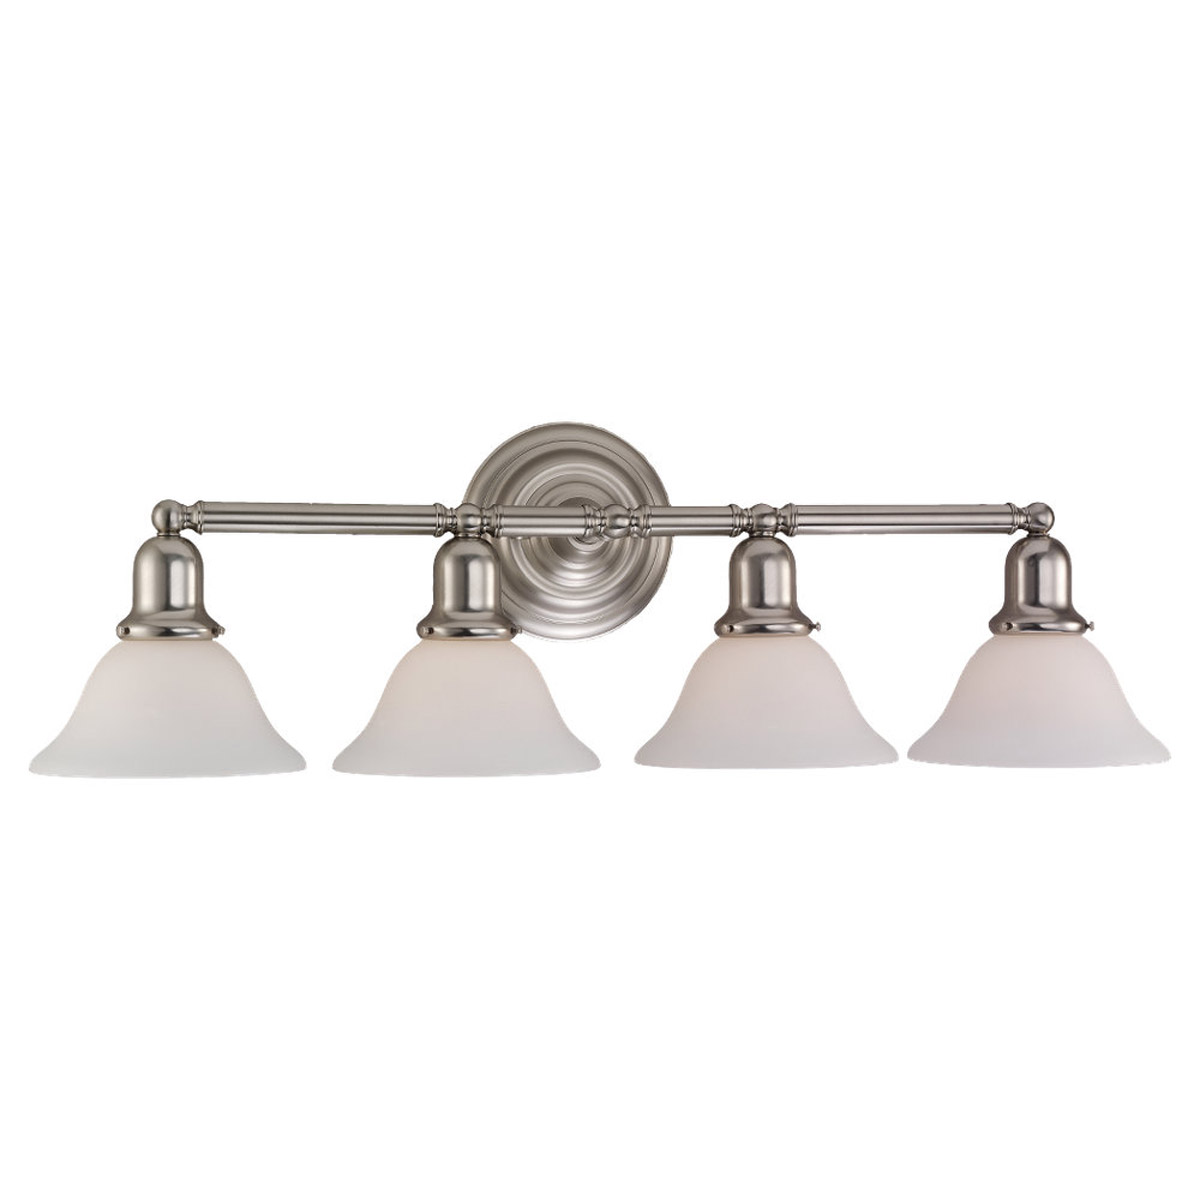 Sea Gull Lighting Sussex 4 Light Bath Vanity in Brushed Nickel 44063-962 photo